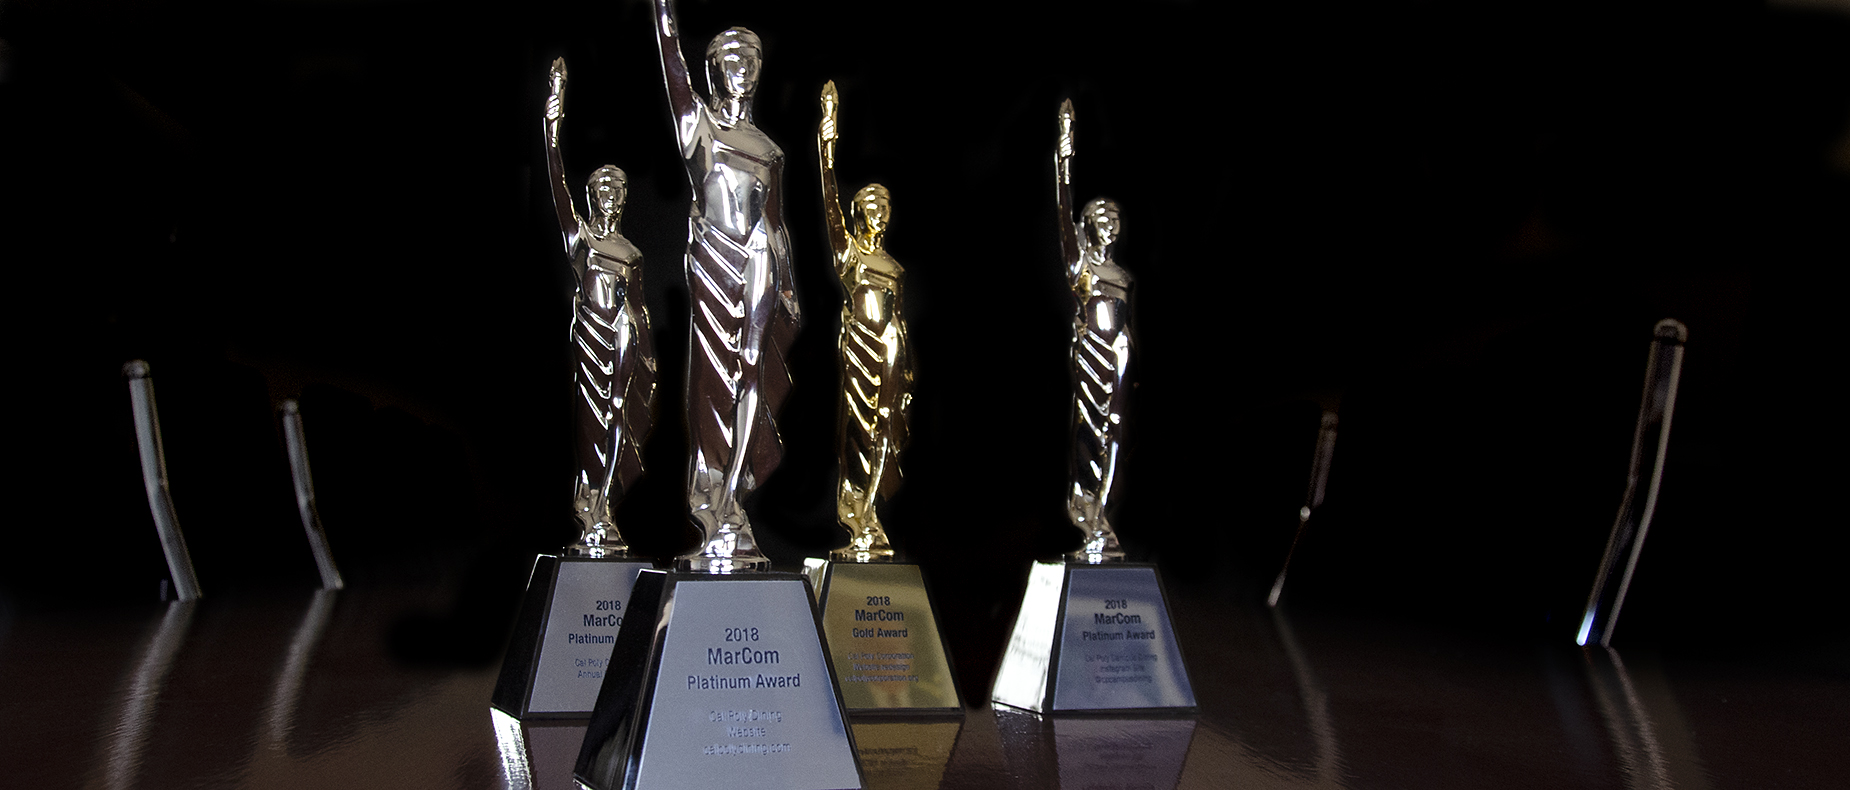 Cal Poly Corporation's Marketing and Communications department received 10 MarCom awards